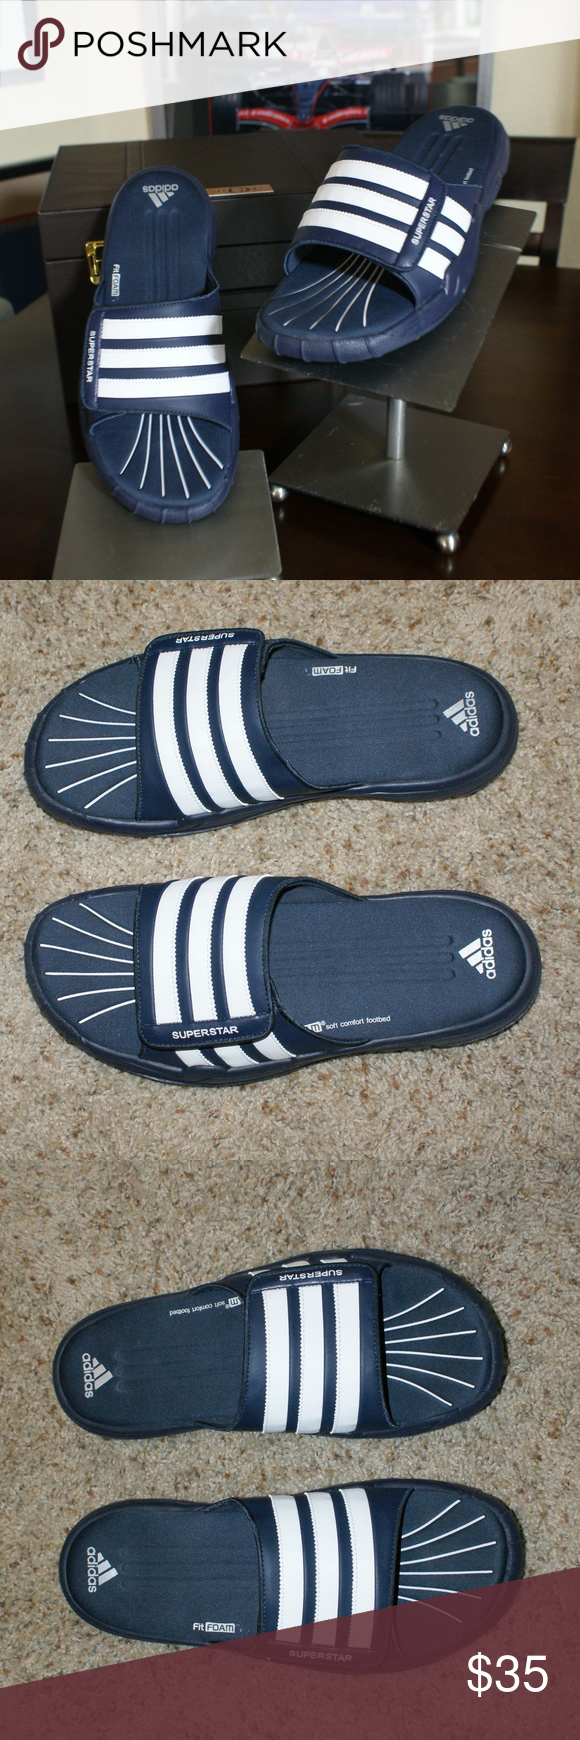 33801d17080fb3 ... official adidas superstar slides mens size 11nwt adidas superstar slides  mens size 11 46170 7249f new ...